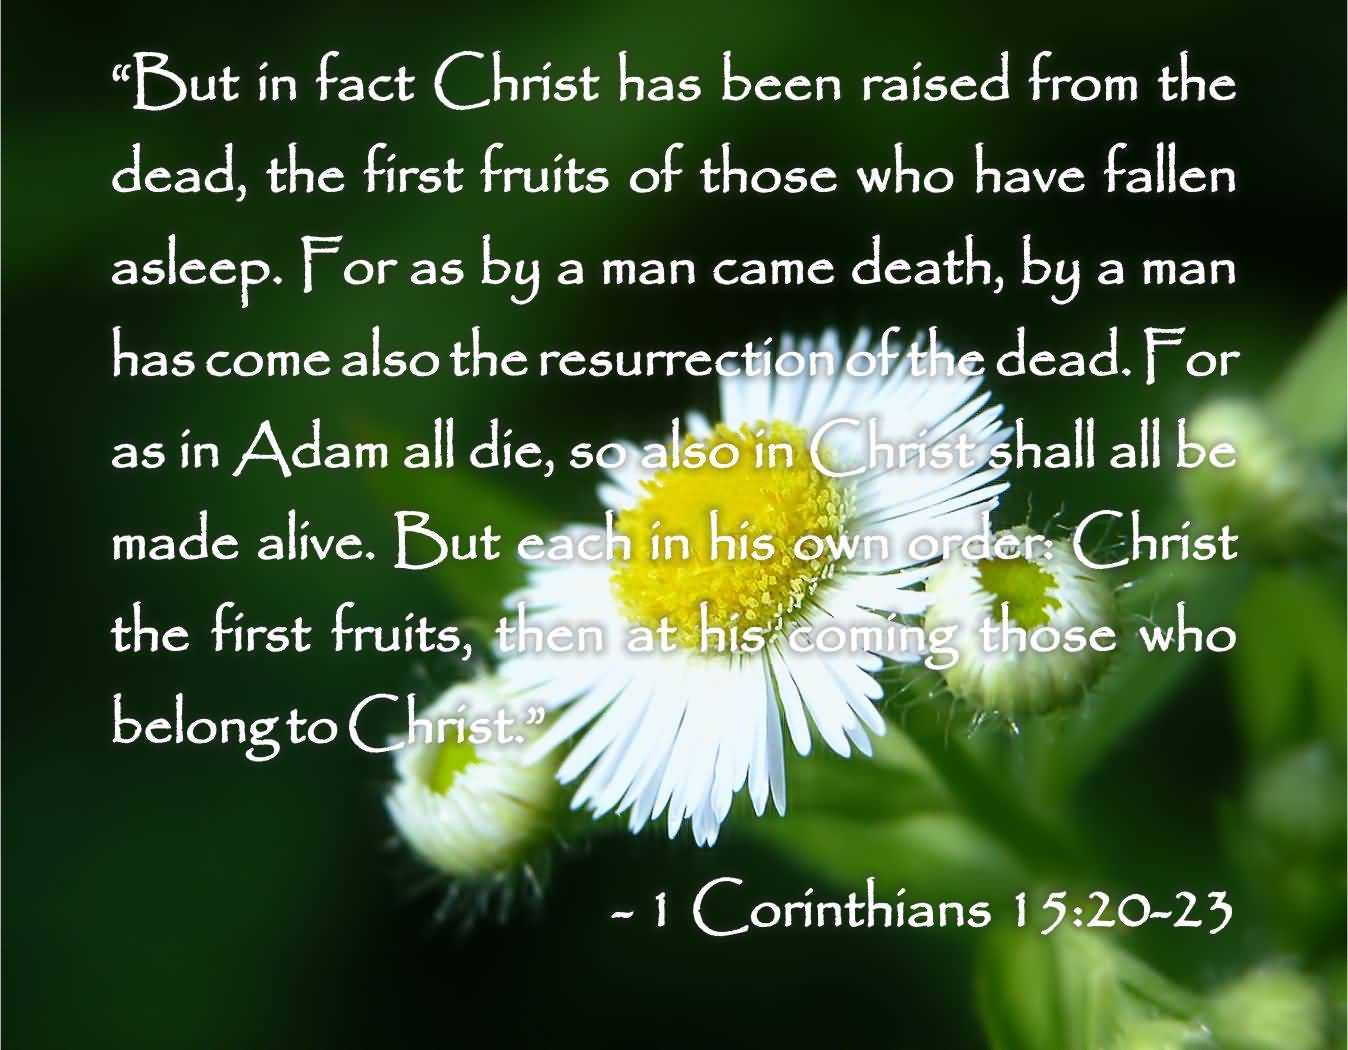 Bible Quotes About Death Of A Loved One Bible Quotes About Losing A Loved One 02  Quotesbae